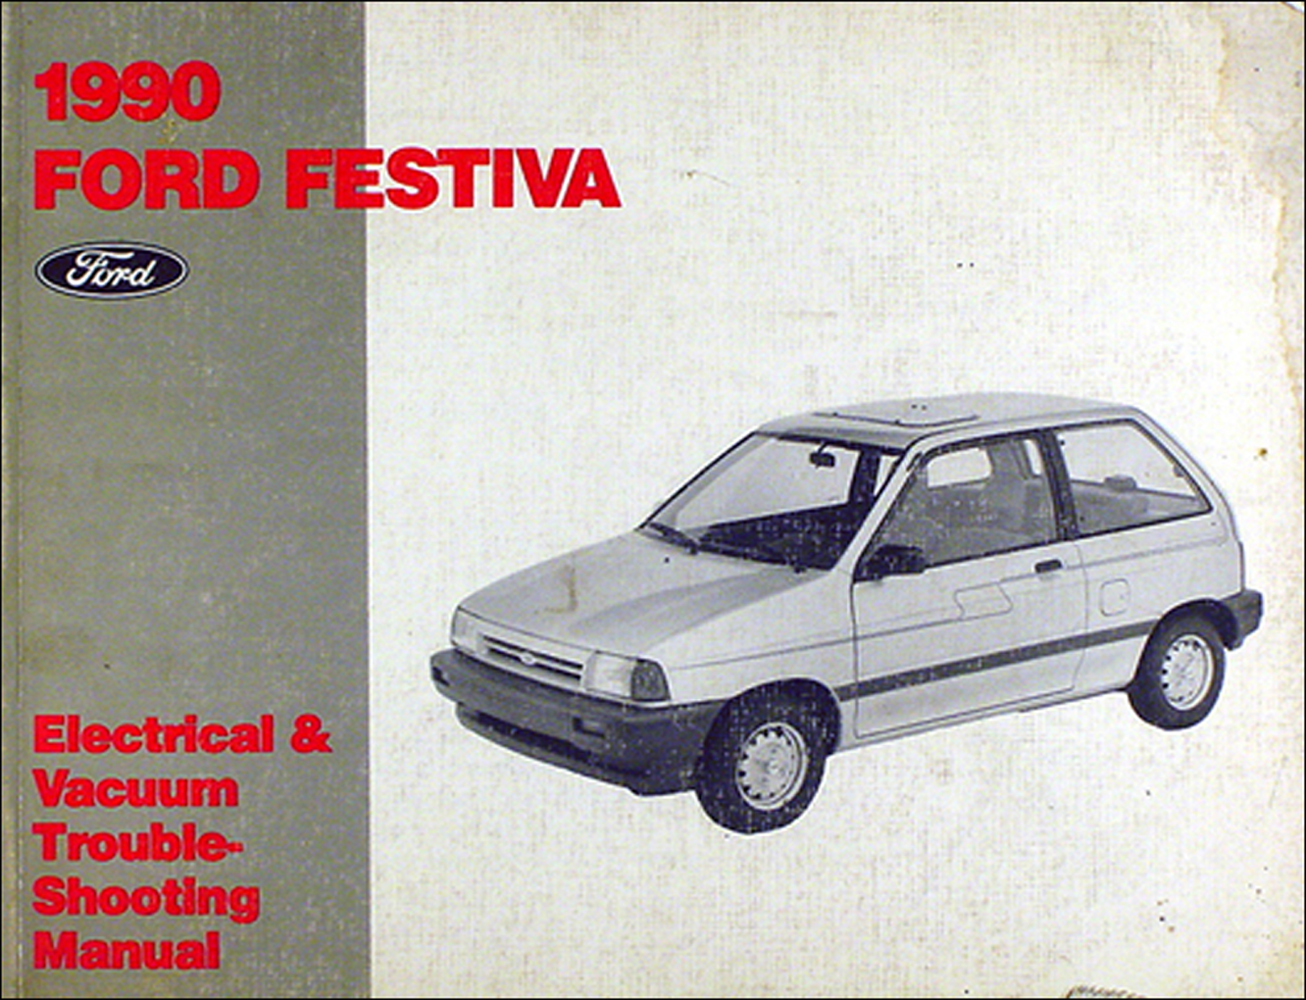 1990 ford festiva original electrical \u0026 vacuum troubleshooting manual1990 Festiva Wiring Diagram #9